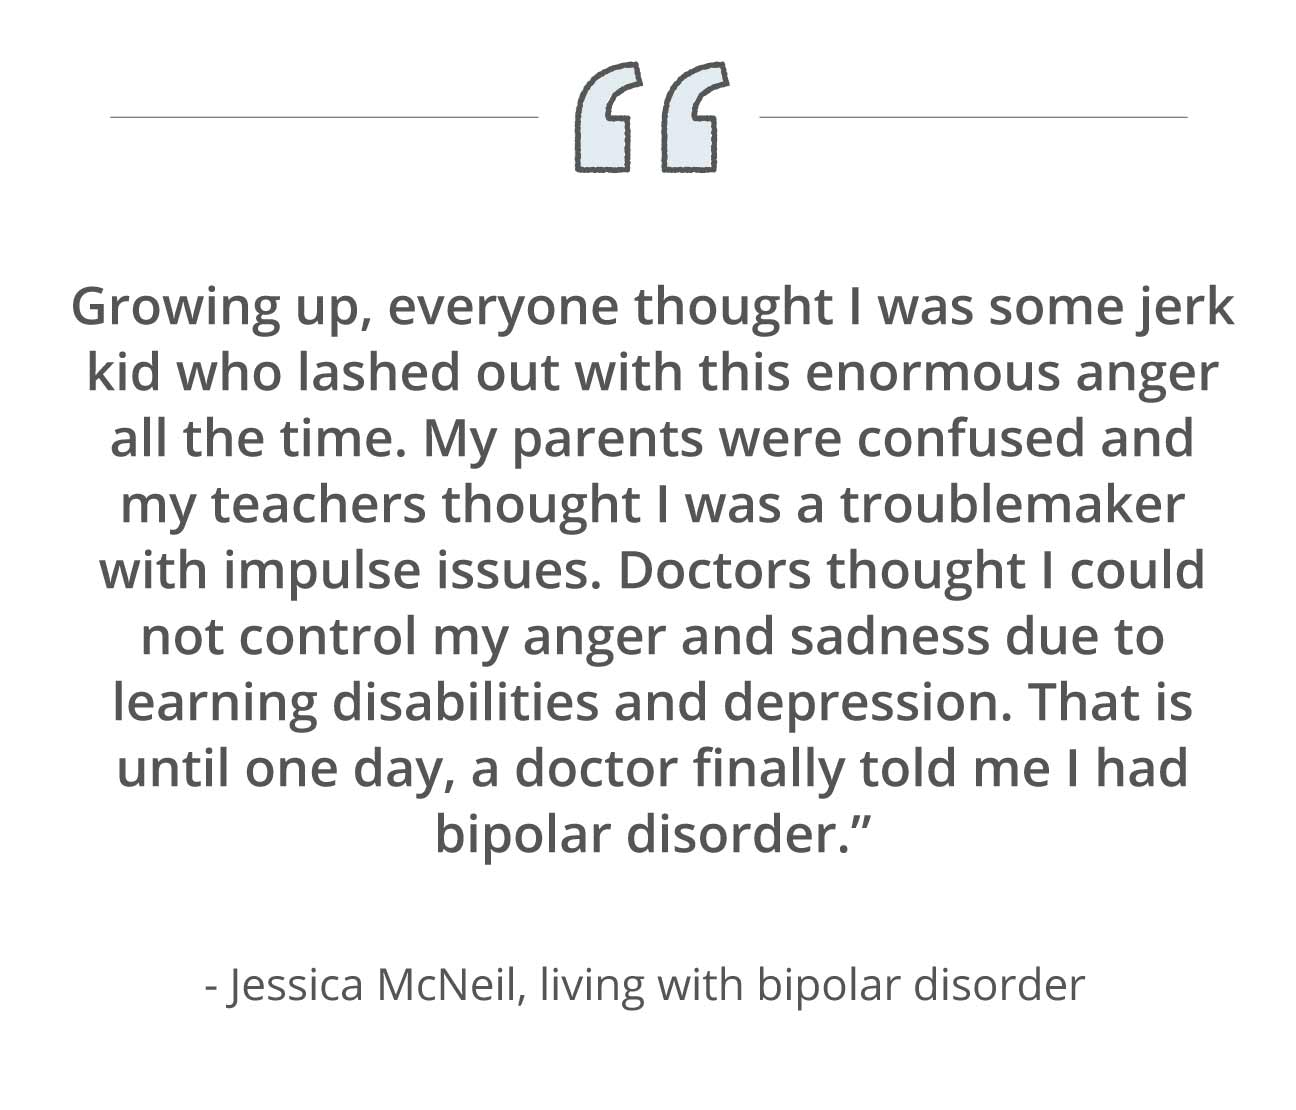 essay on bipolar disorder in children Diagnosing bipolar disorder in children is a very confusing and complex process it is thought that the onset of puberty is a trigger to bipolar disorder 3613 words - 14 pages depression in children and adolescents what is depression depression is the most common mental disorder, not only for.